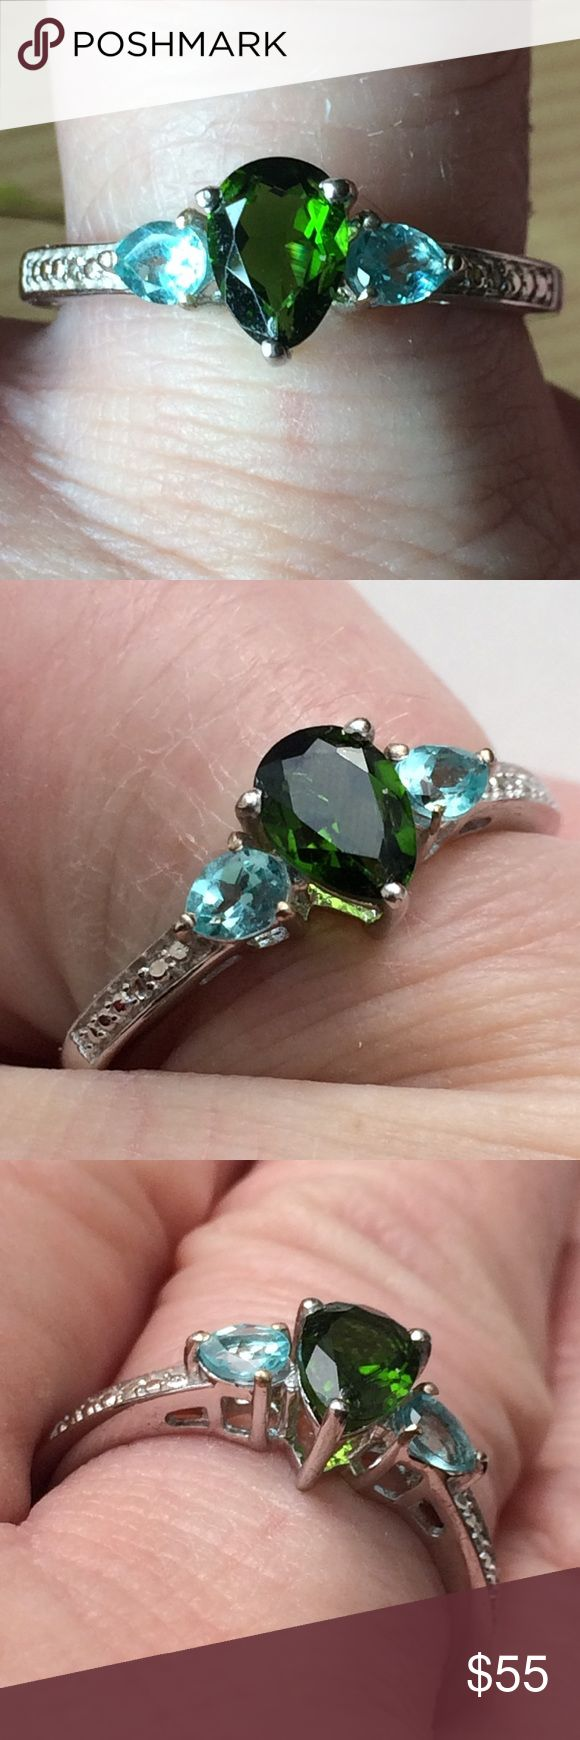 """NWT! 🔥Genuine Rare Chrome Diopside + Apatite .925 Brand new🍒 Tag on! Genuine Rare Russian Chrome Diopside (1 - 7x6mm fancy faceted pear) + Apatite (2 - 5x4mm fancy faceted pears).Awesome piece! High sought high quality gems. Made in the USA! -🎁🎁. Plus comes w/ FREE BRAND NEW """" Thank You"""" gift. 🎁🎁.     Seller ships quickly! Please check my other listings of deeply discounted valuable goodies . CHEERS! #sterling,#silver, #ring #apatite #rare #chrome #diopside manufacturer (usa) Jewelry…"""